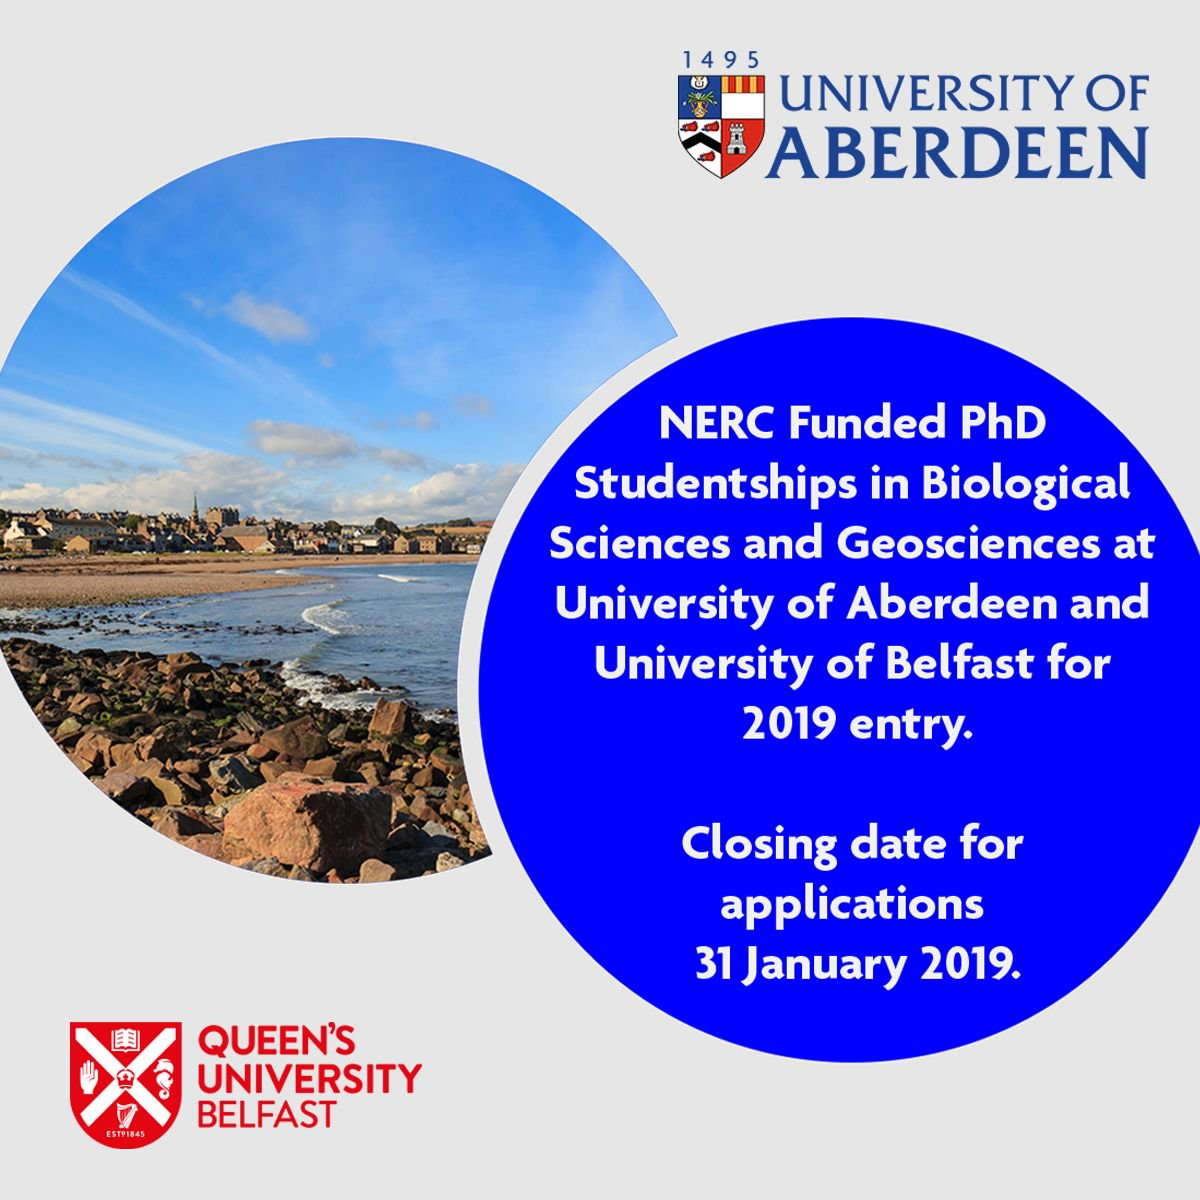 NERC Funded PhD Studentships in Biological Sciences and Geosciences at University of Aberdeen and University of Belfast for 2019 entry Closing date for applications 31 January 2019. http://bit.ly/2LvXChU